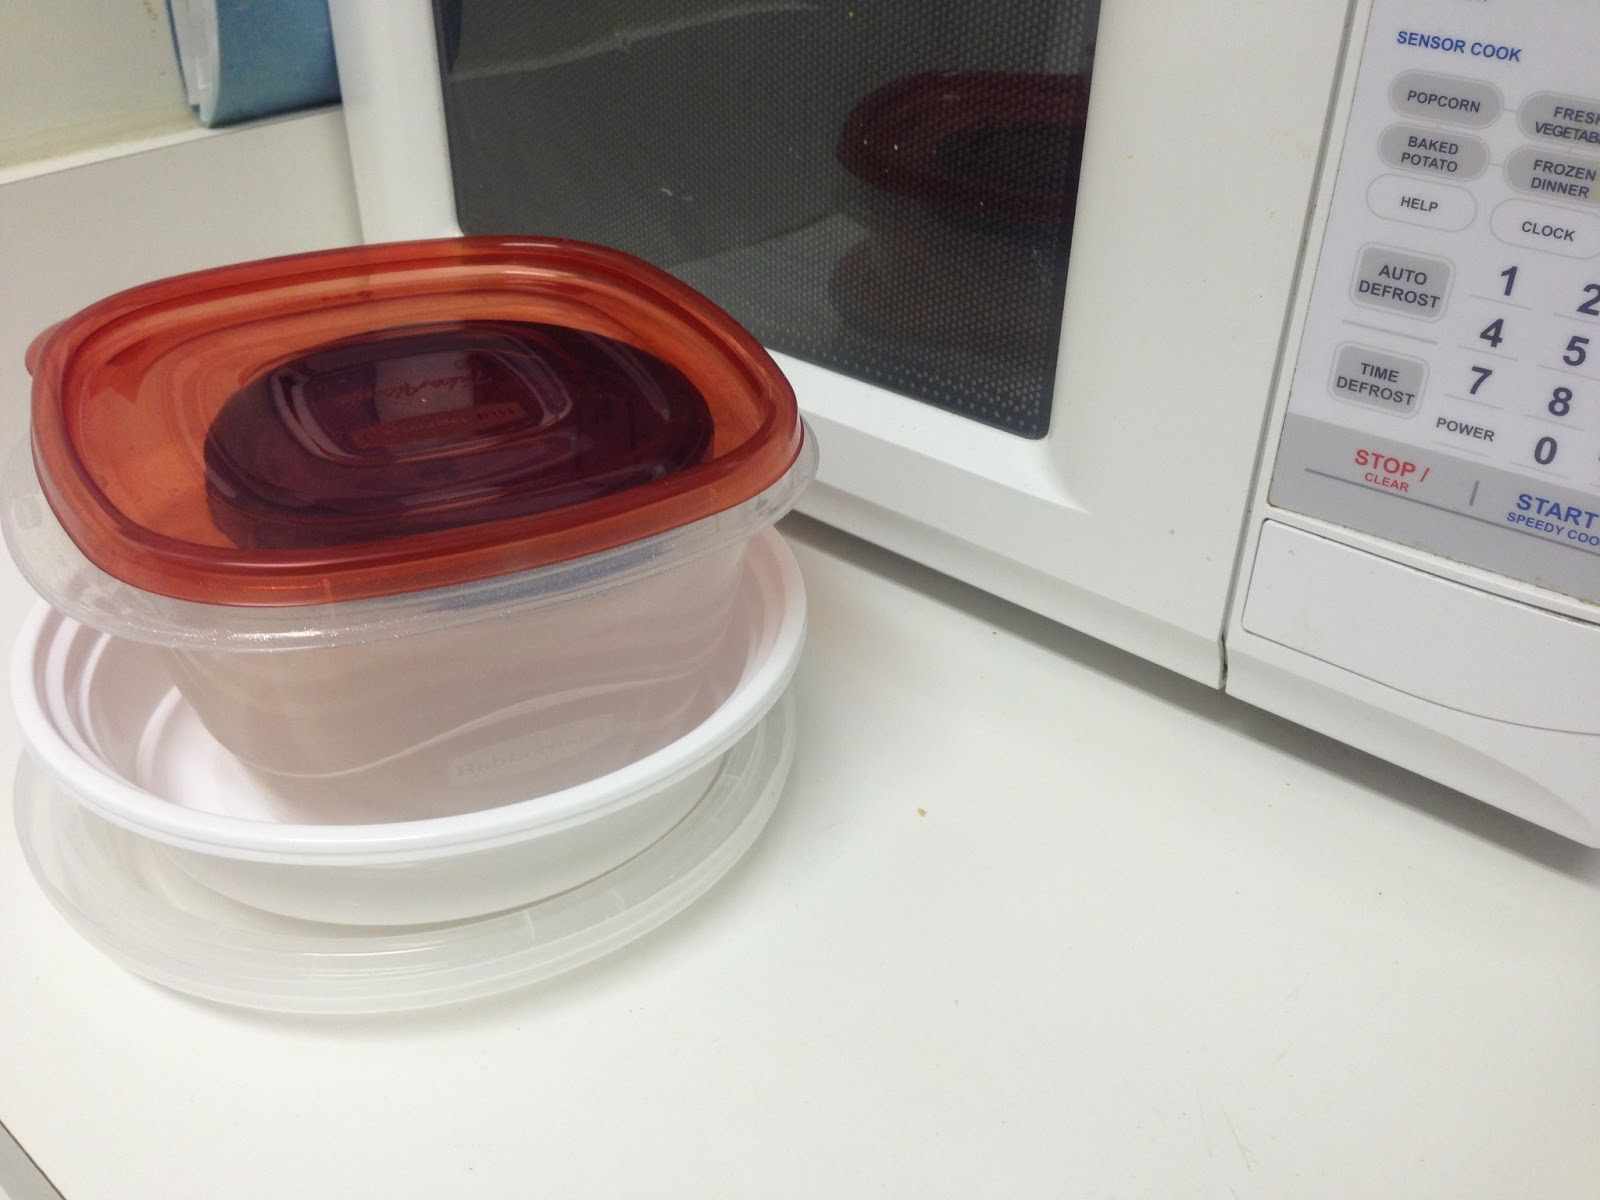 Use FDA-approved containers in the microwave to avoid BPAs. (Photo: dareyoutoblog.com)